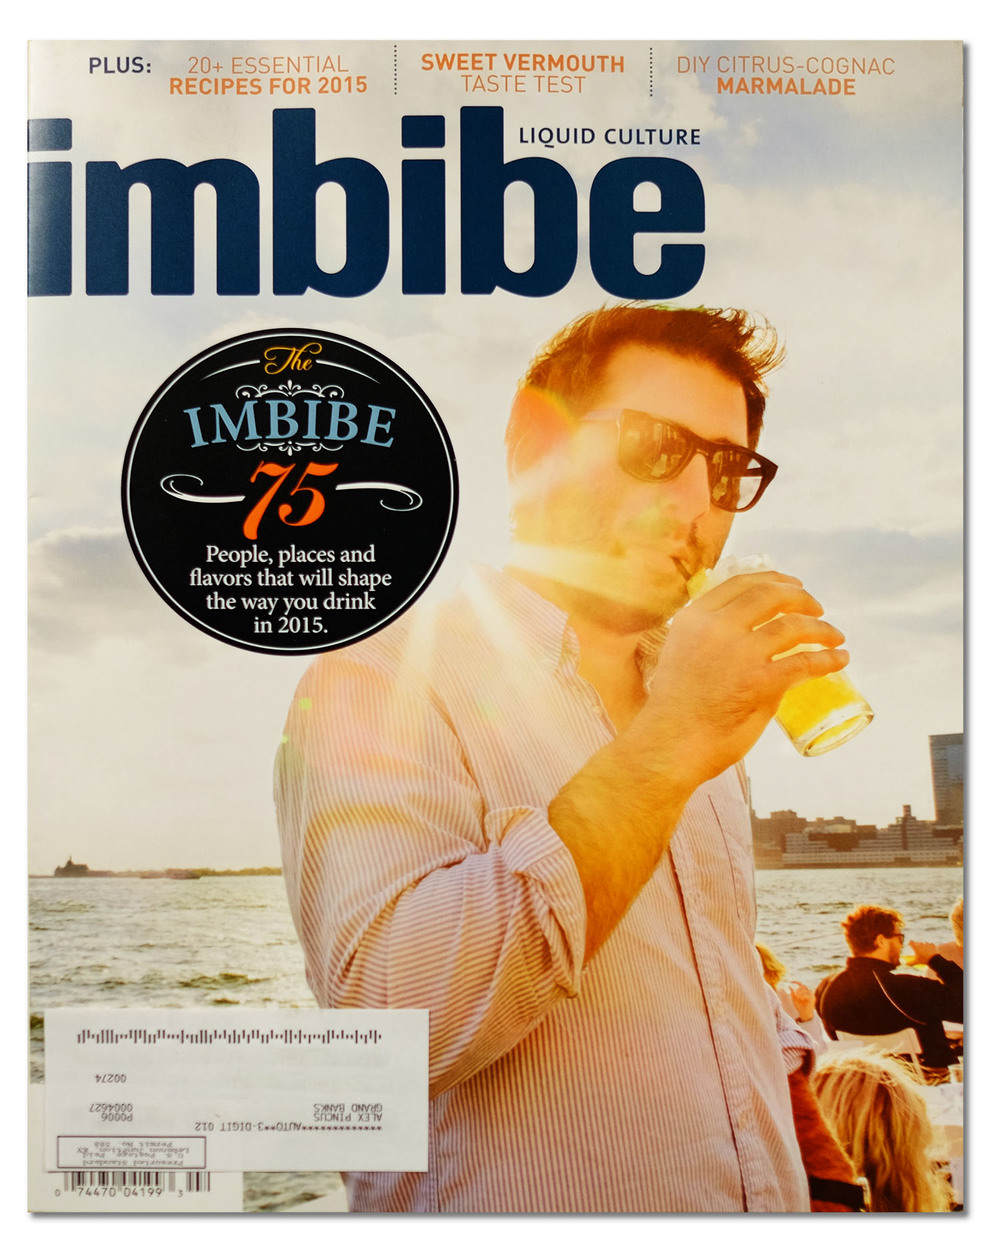 Grand Banks Co-Founder Alex Pincus on the cover of Imbibe